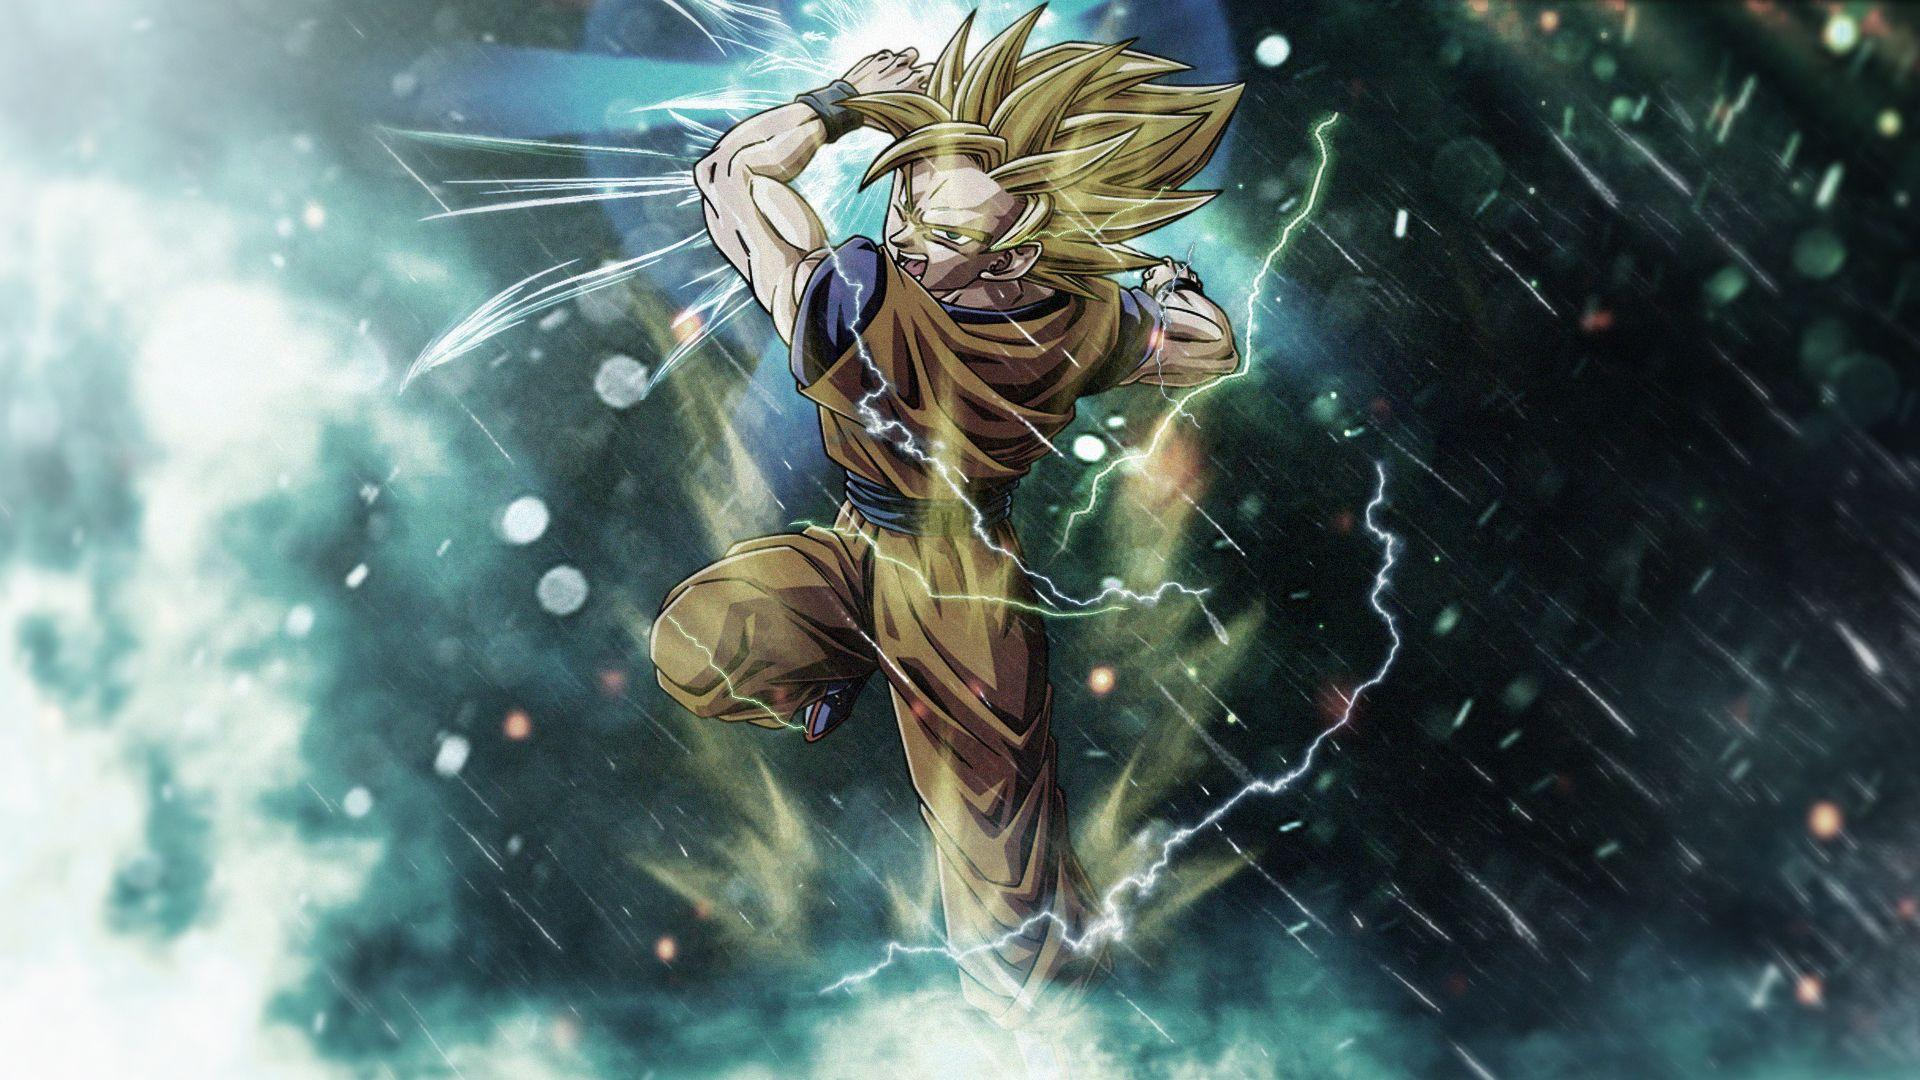 Dragon Ball Z Wallpapers Hd Wallpaper Cave